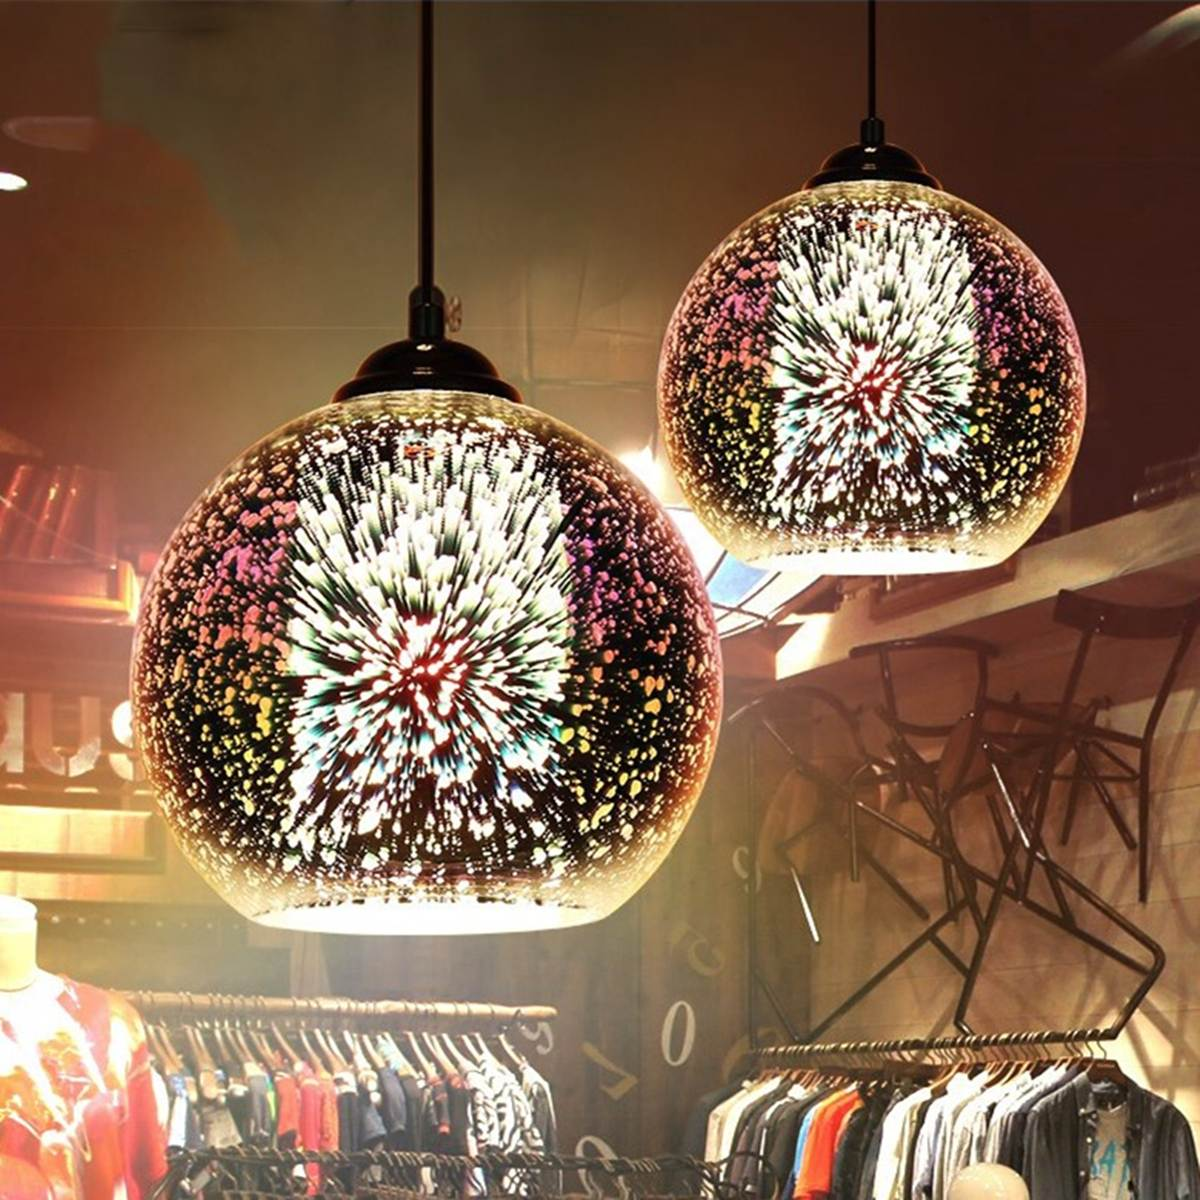 Colorful Modern Glass Ball Shape Pendant Light Round Panel Night Lamp Living Room Hallway Coffee Shop Home Decor Indoor Lighting modern glass round white ball brass pendant light led chain cord copper lamp fixture for living room window shop home decoration